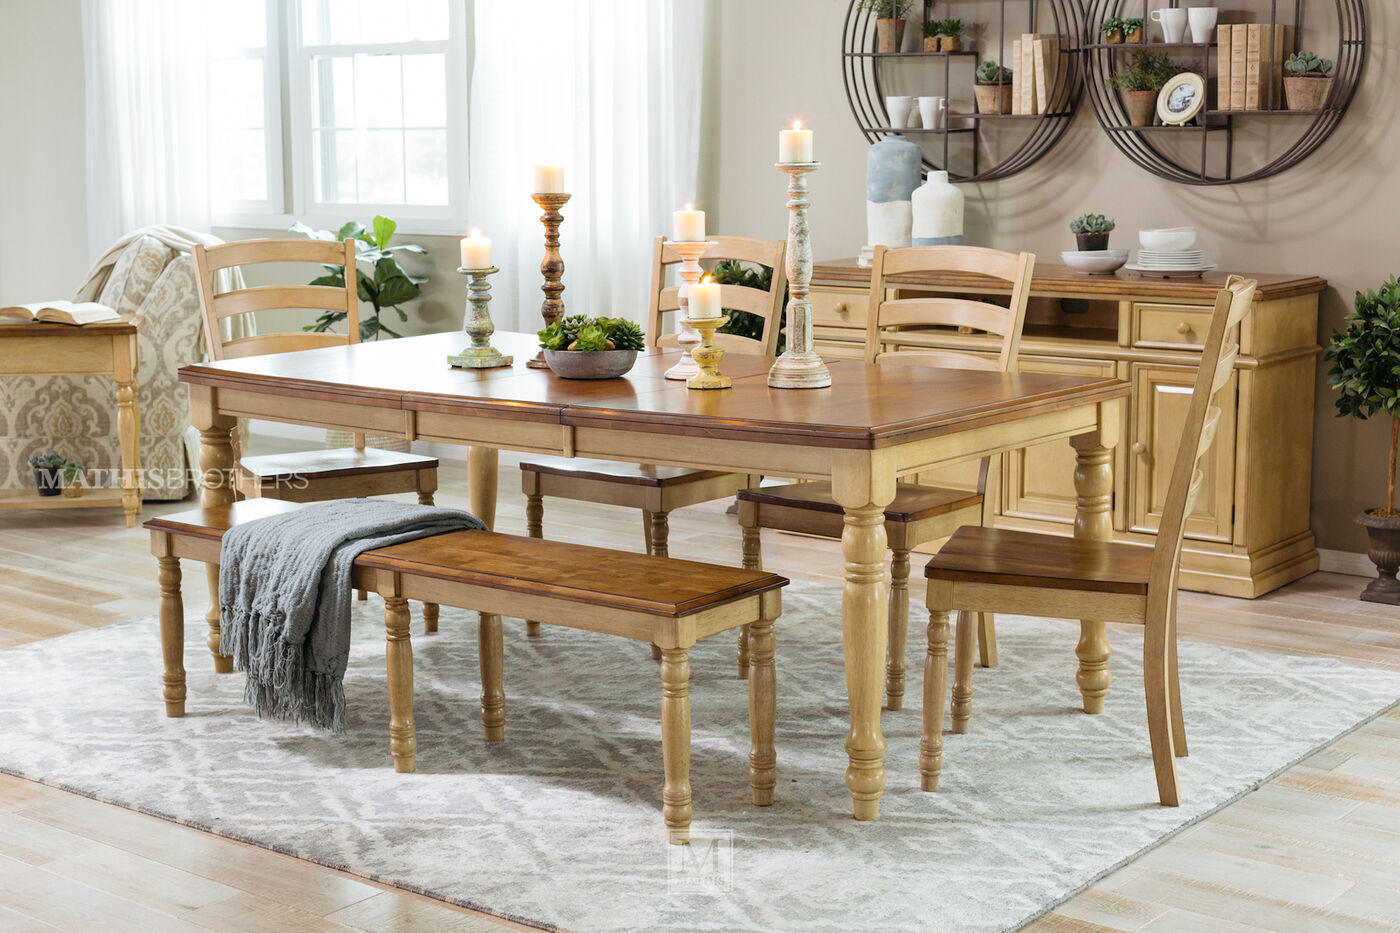 60quot 78quot Solid Hardwood Dining Table